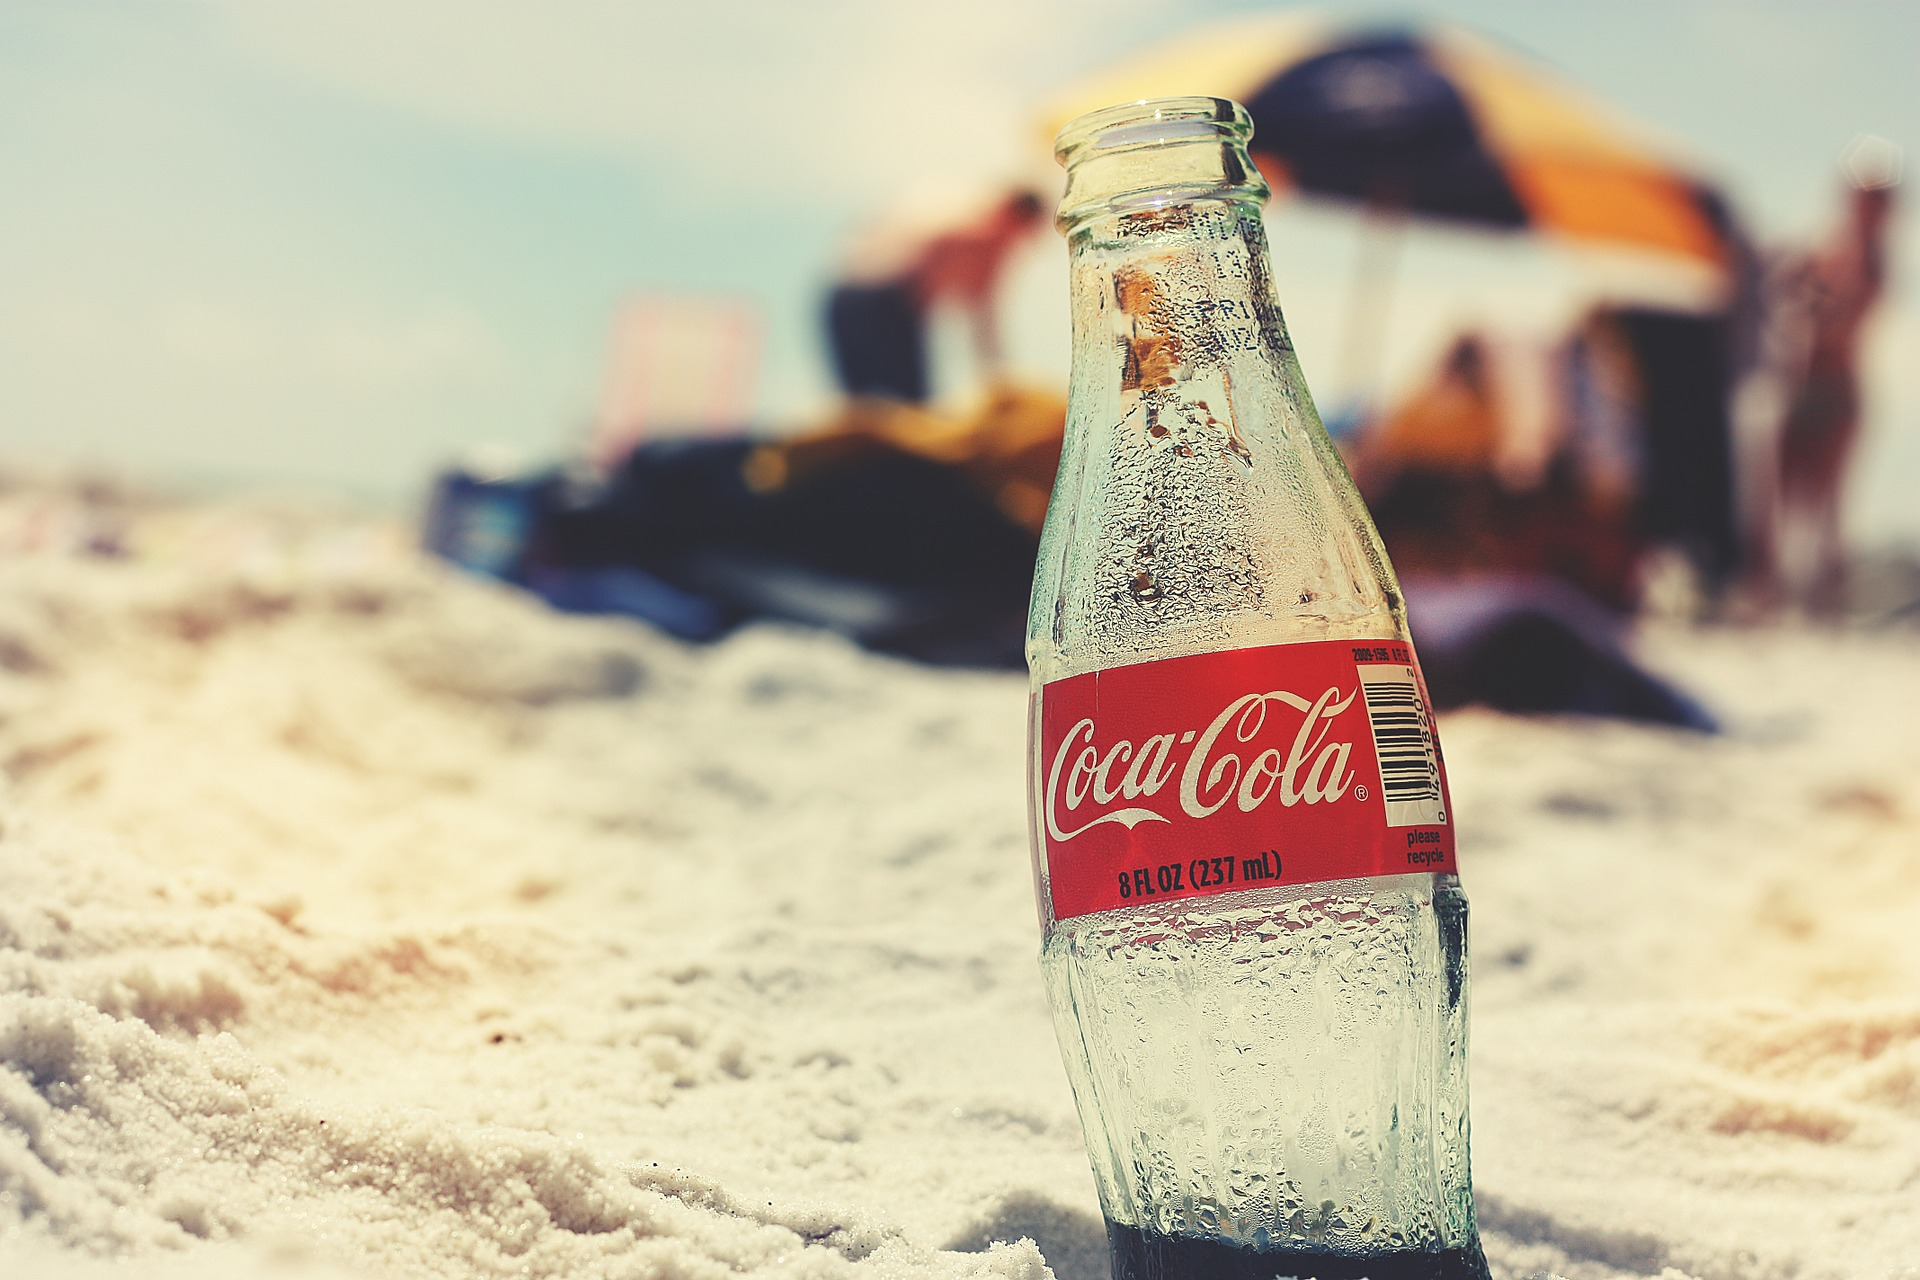 COCA COLA KO stock news and analysis